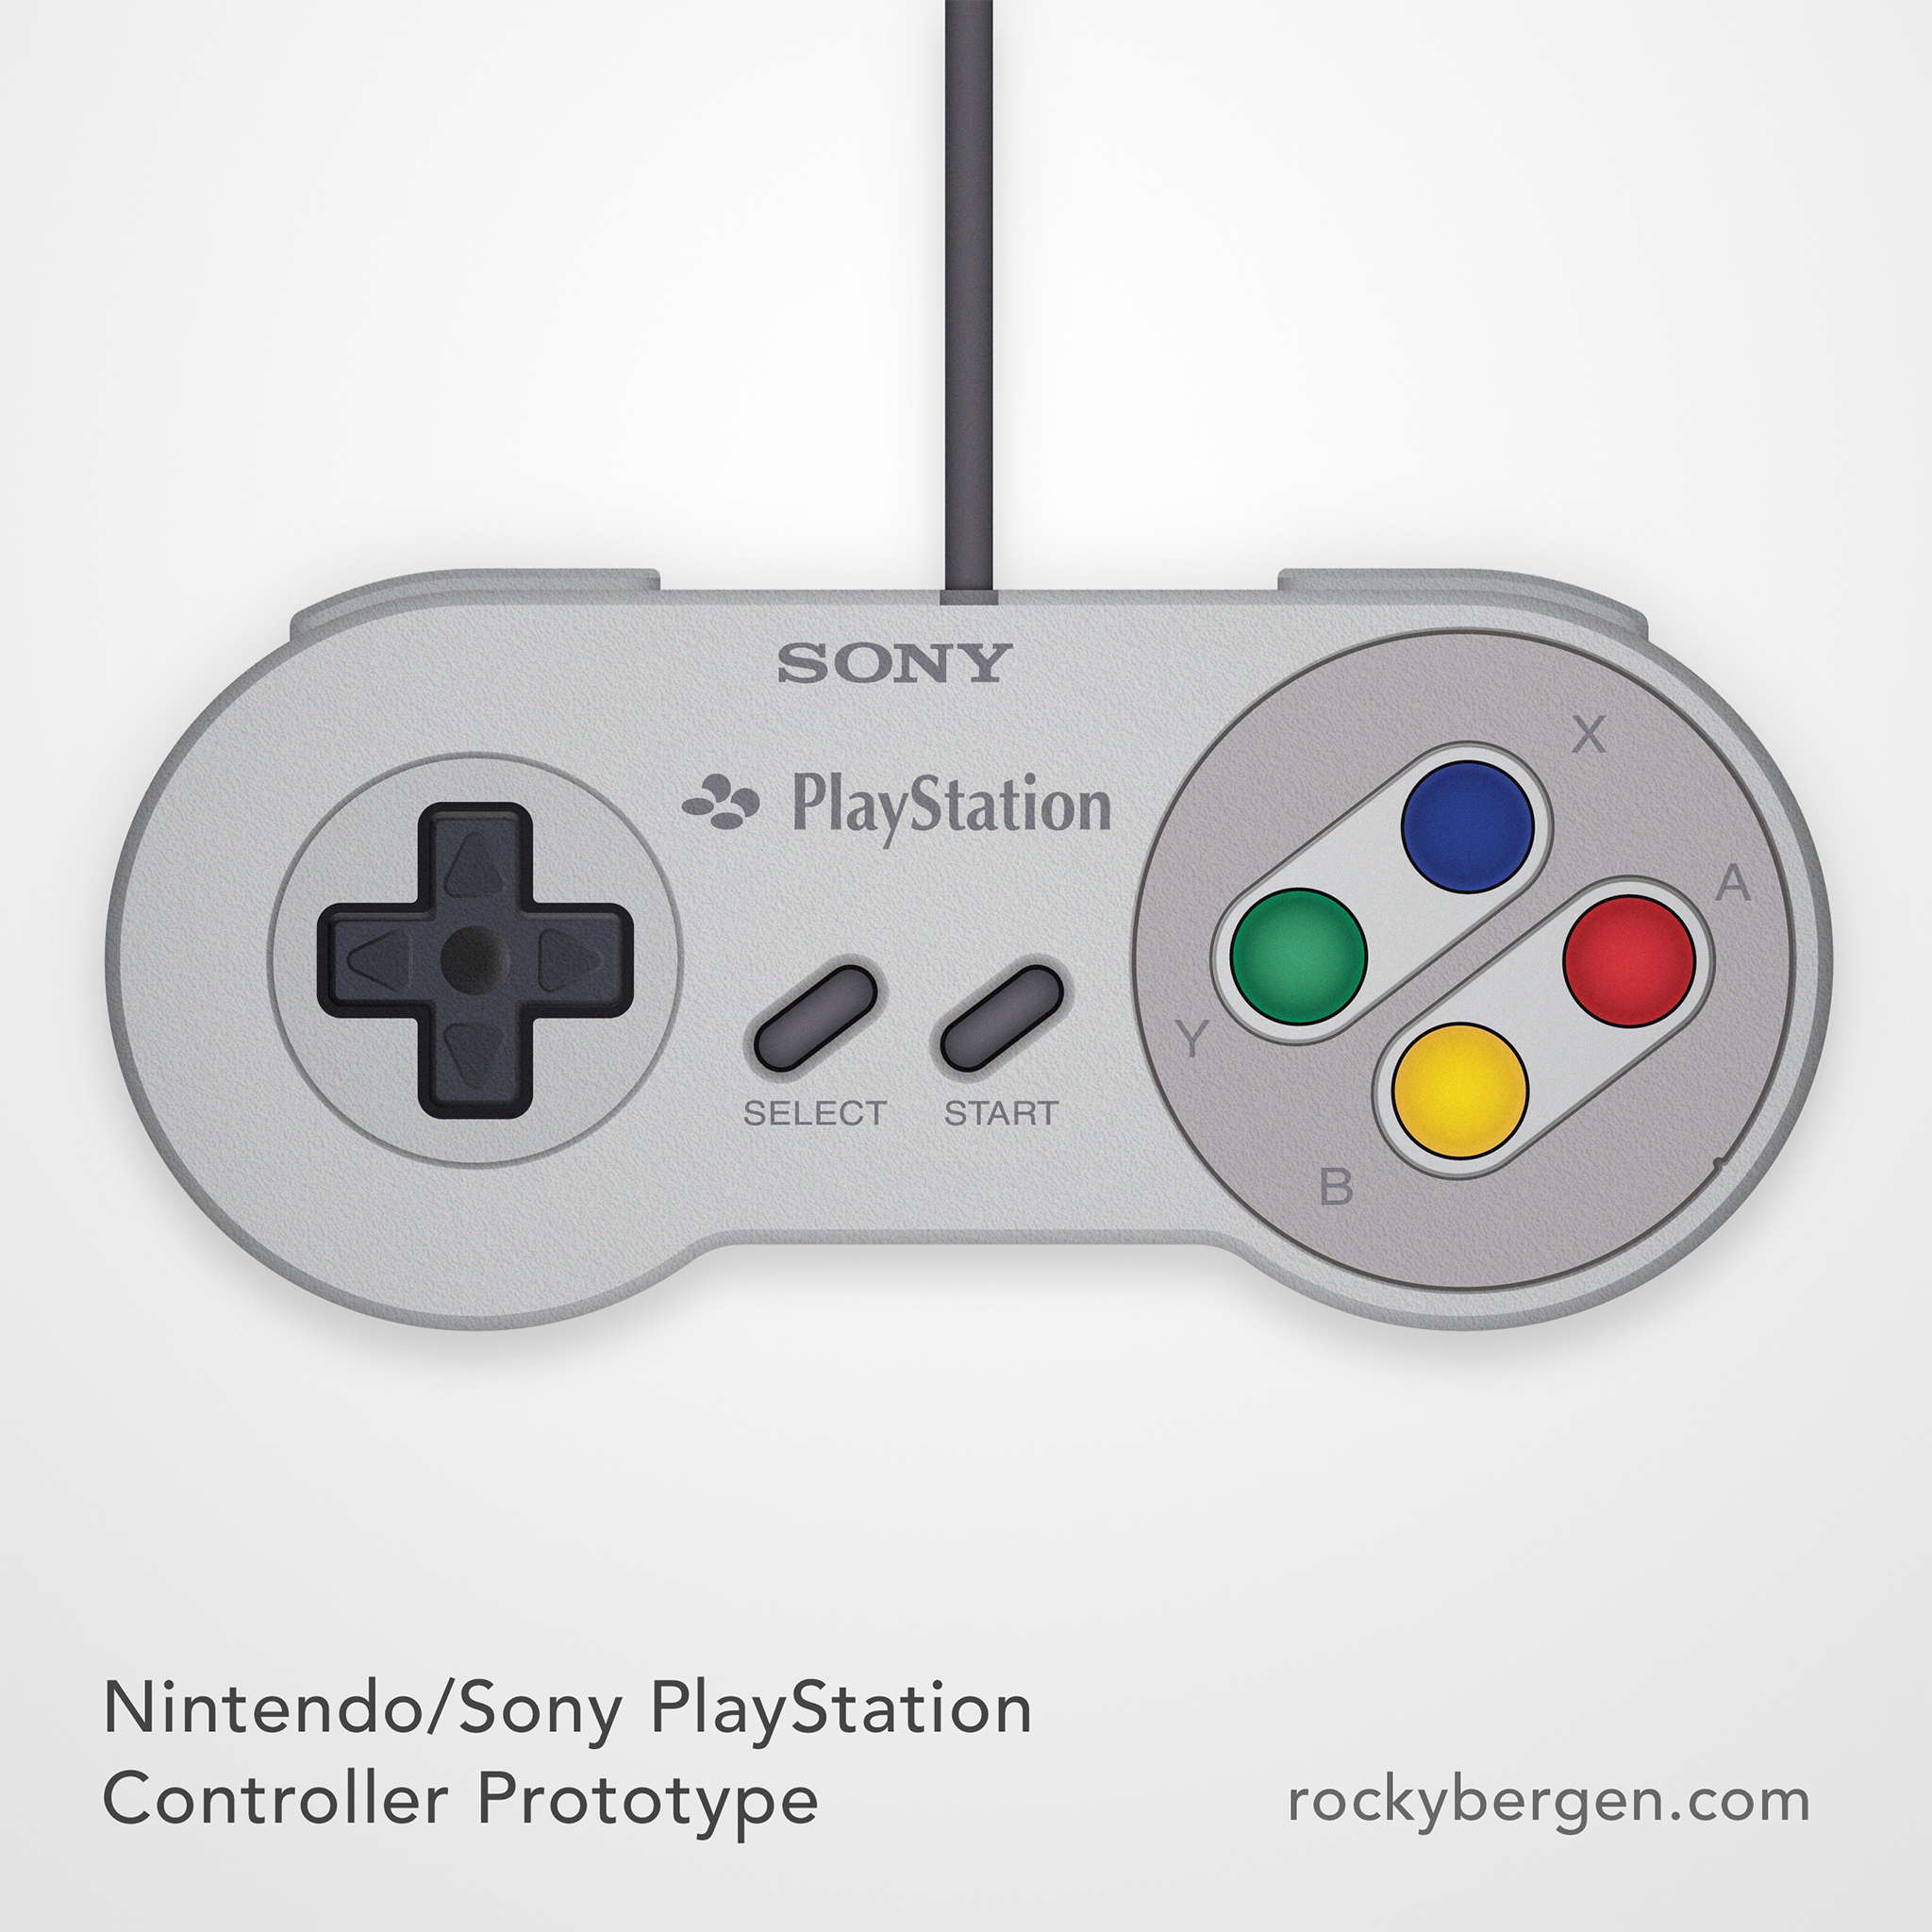 A surreal mashup of branding on the iconic Super Famicom controller hints at a reality that never would be.